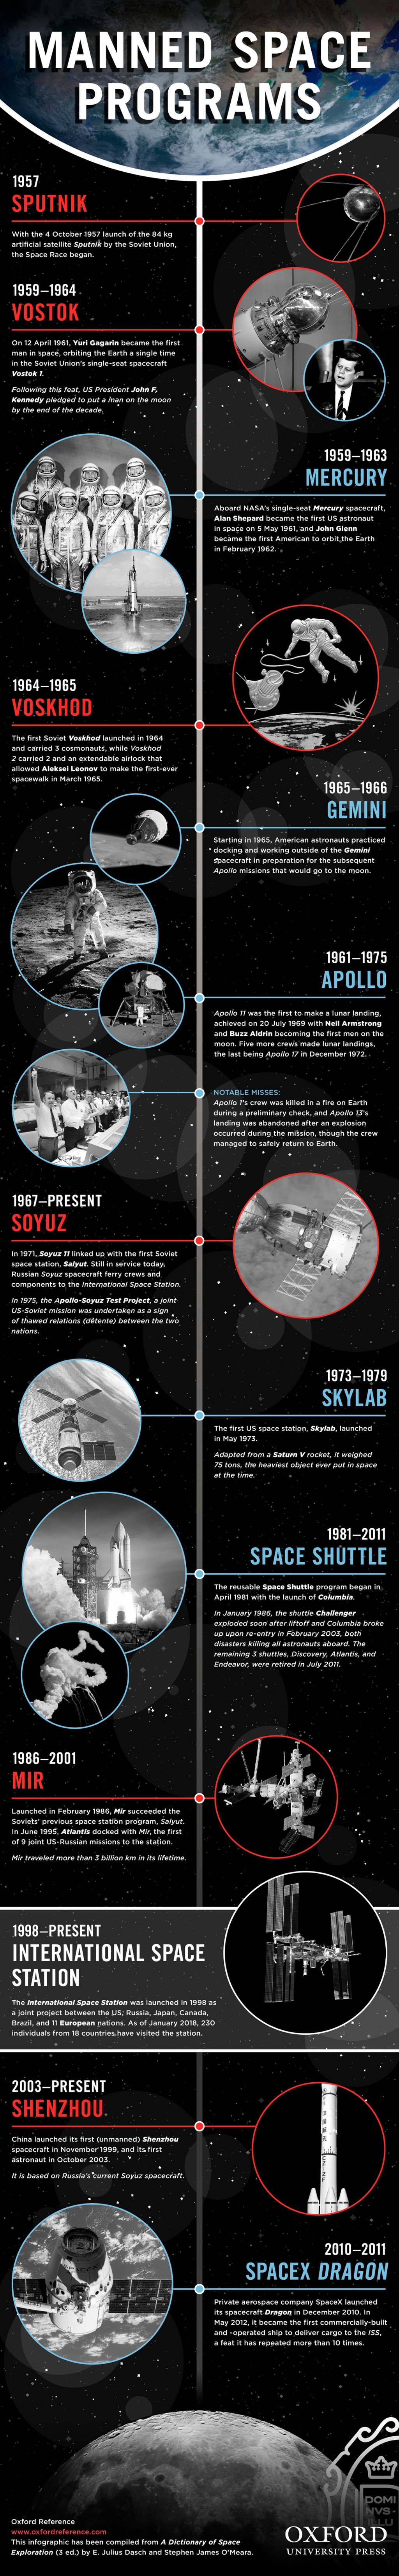 The history of manned space flight [infographic]